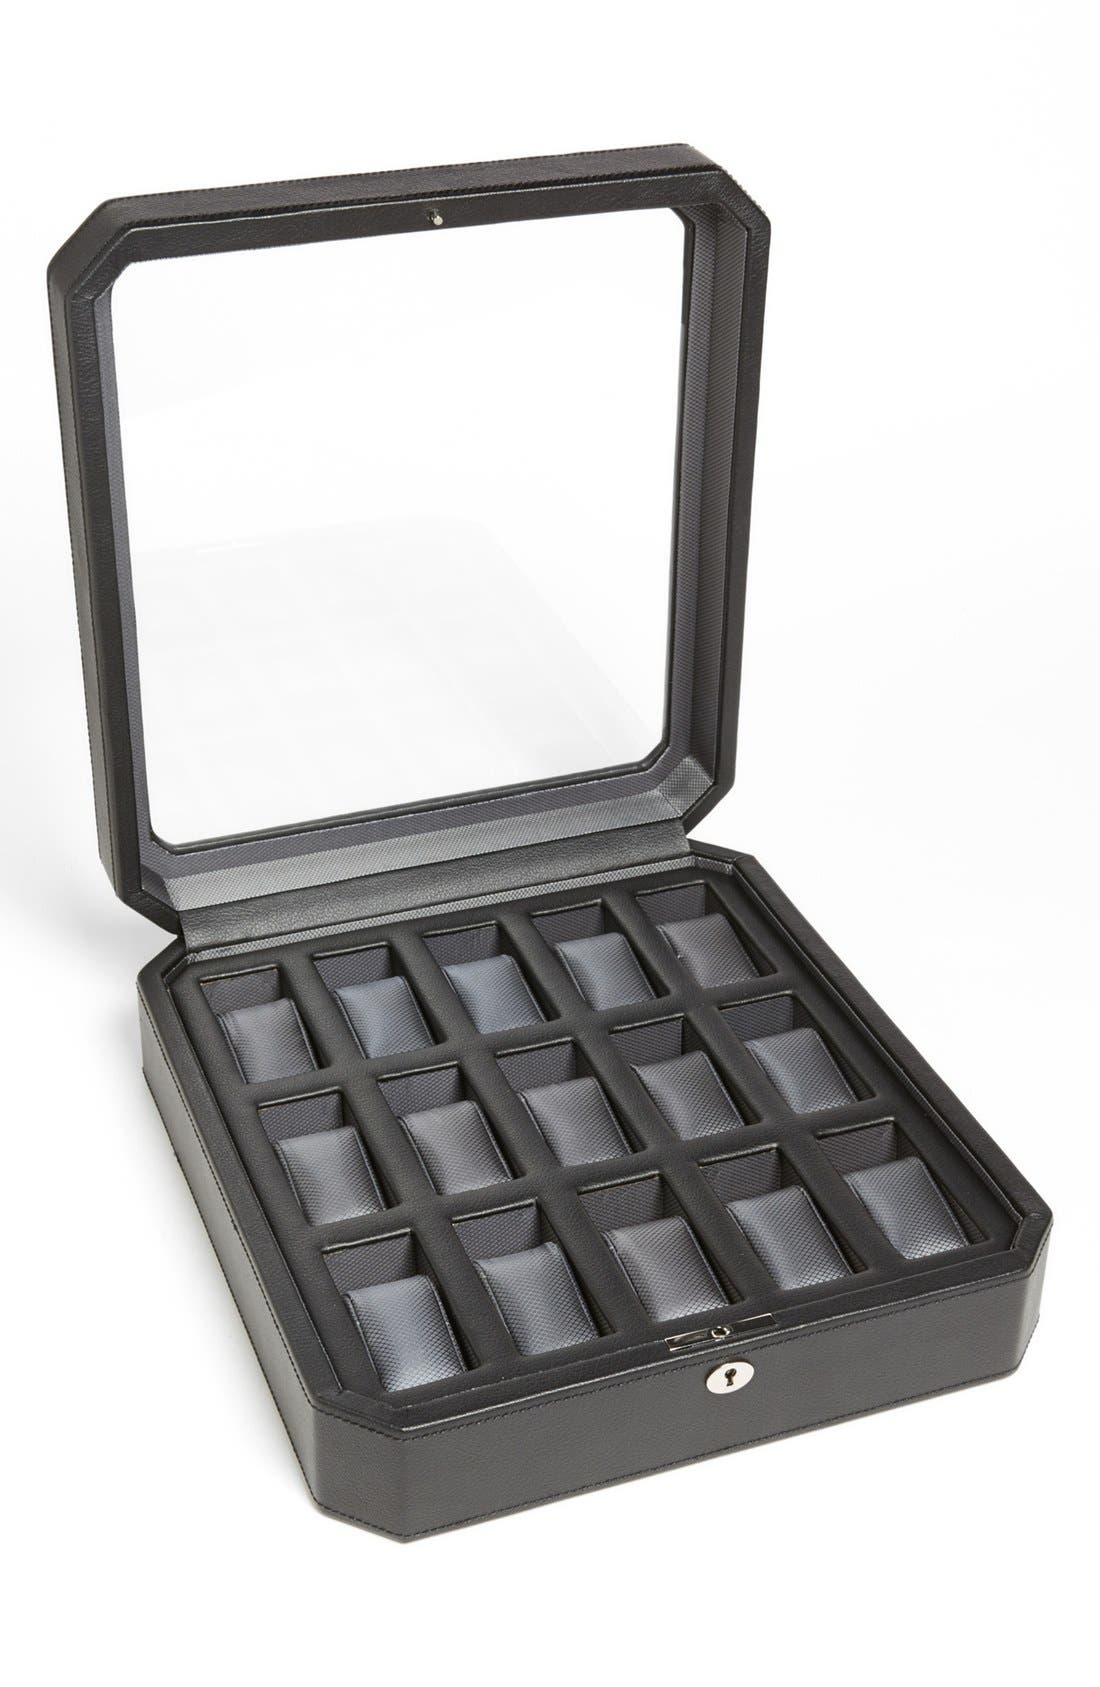 reputable site 21359 f6509 Watch Winders, Boxes & Travel Cases | Nordstrom